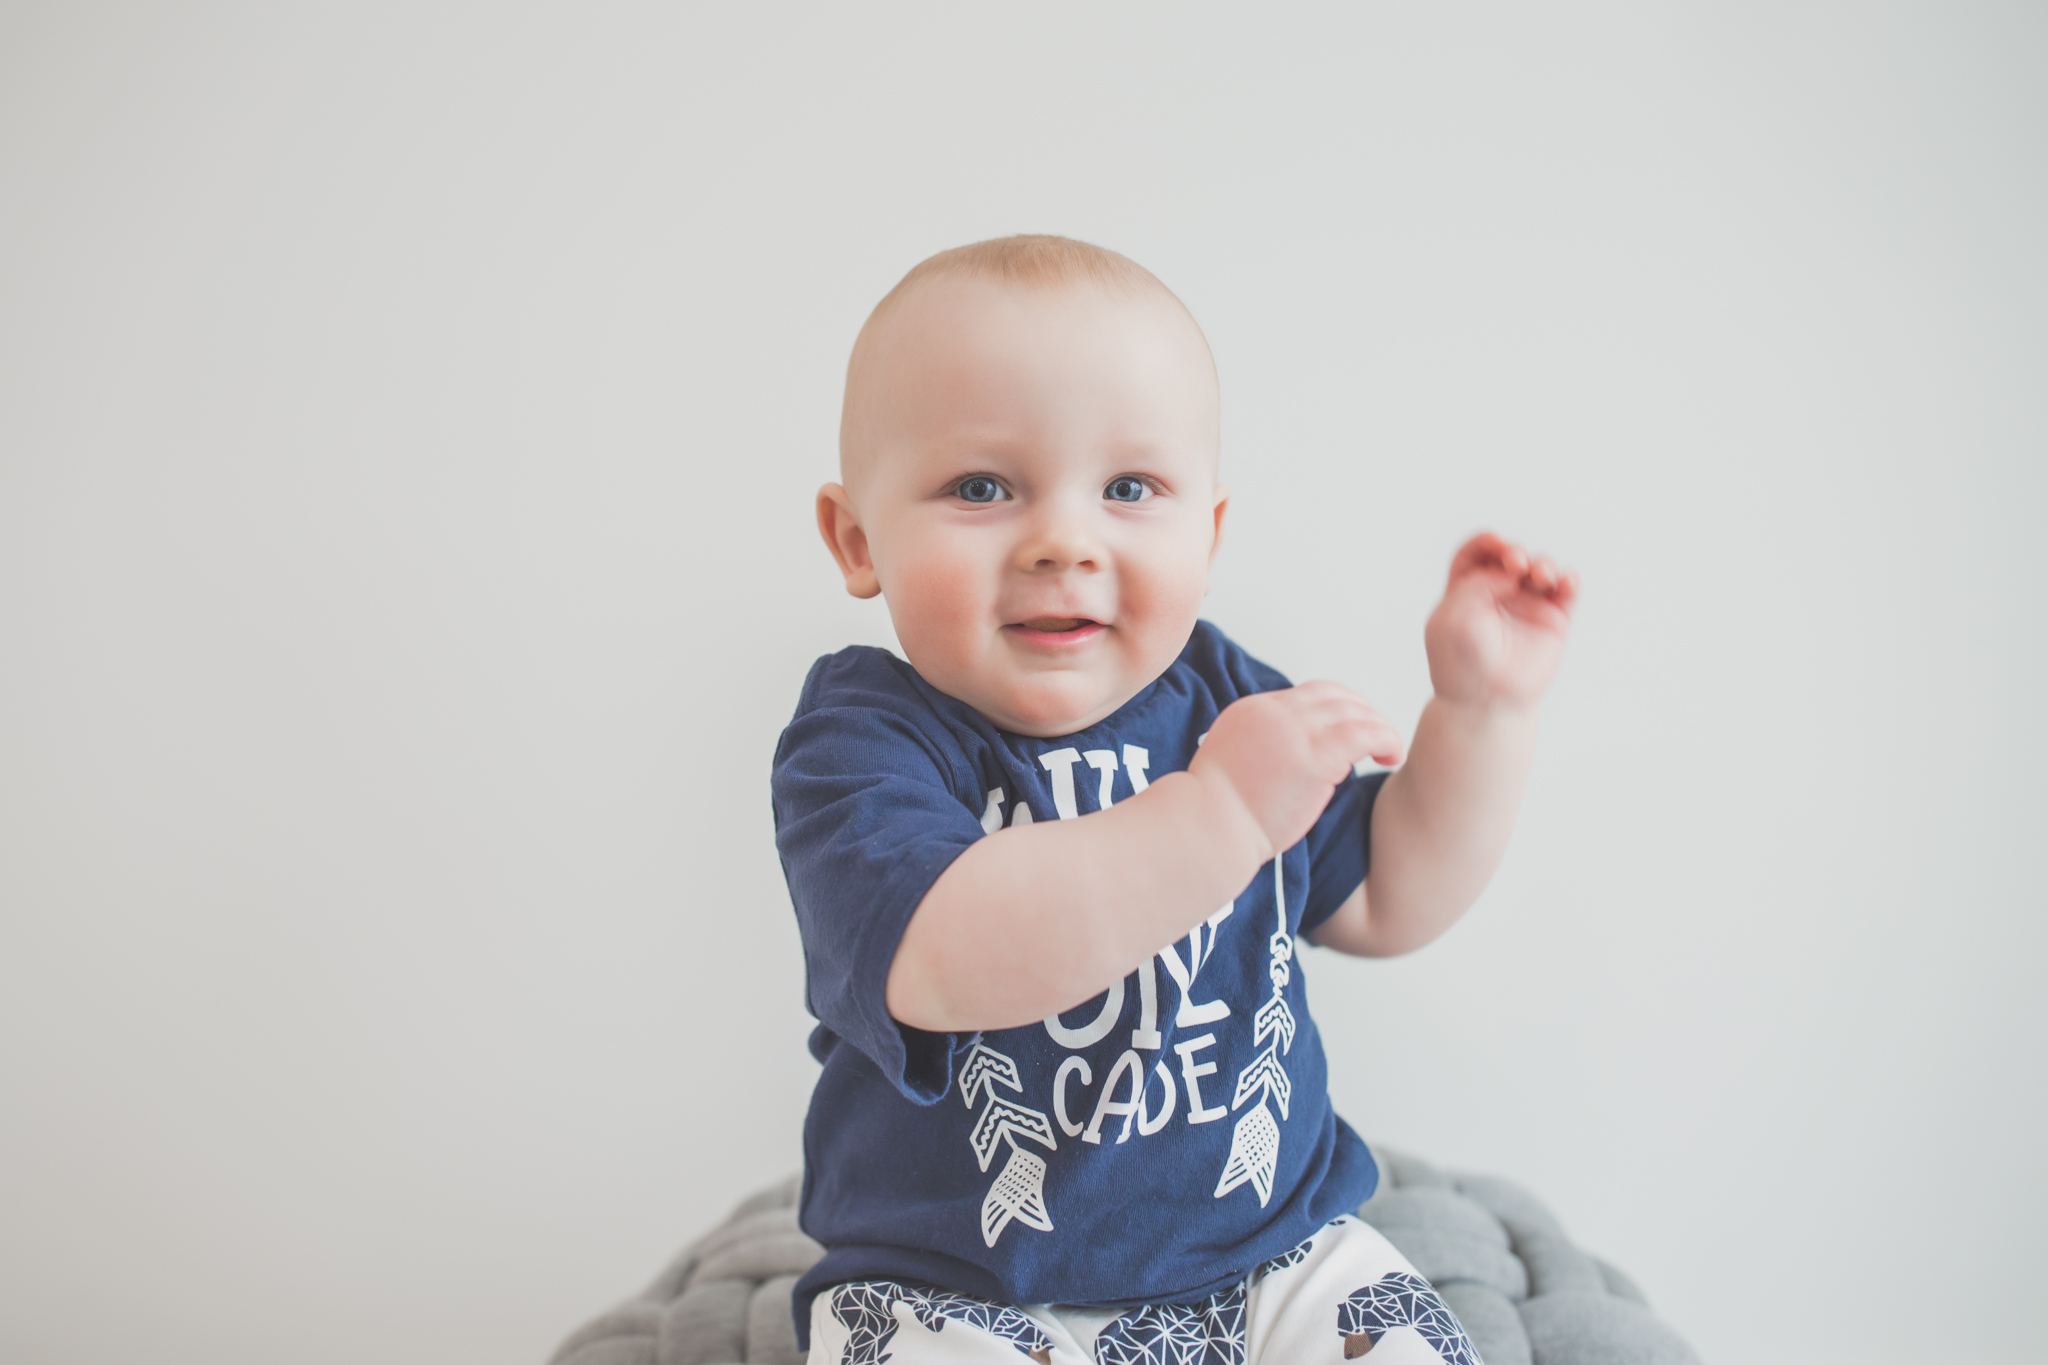 Cade 1 Year Old Cake Smash Milestone Session Cara Peterson Photography Rockford IL -17.jpg